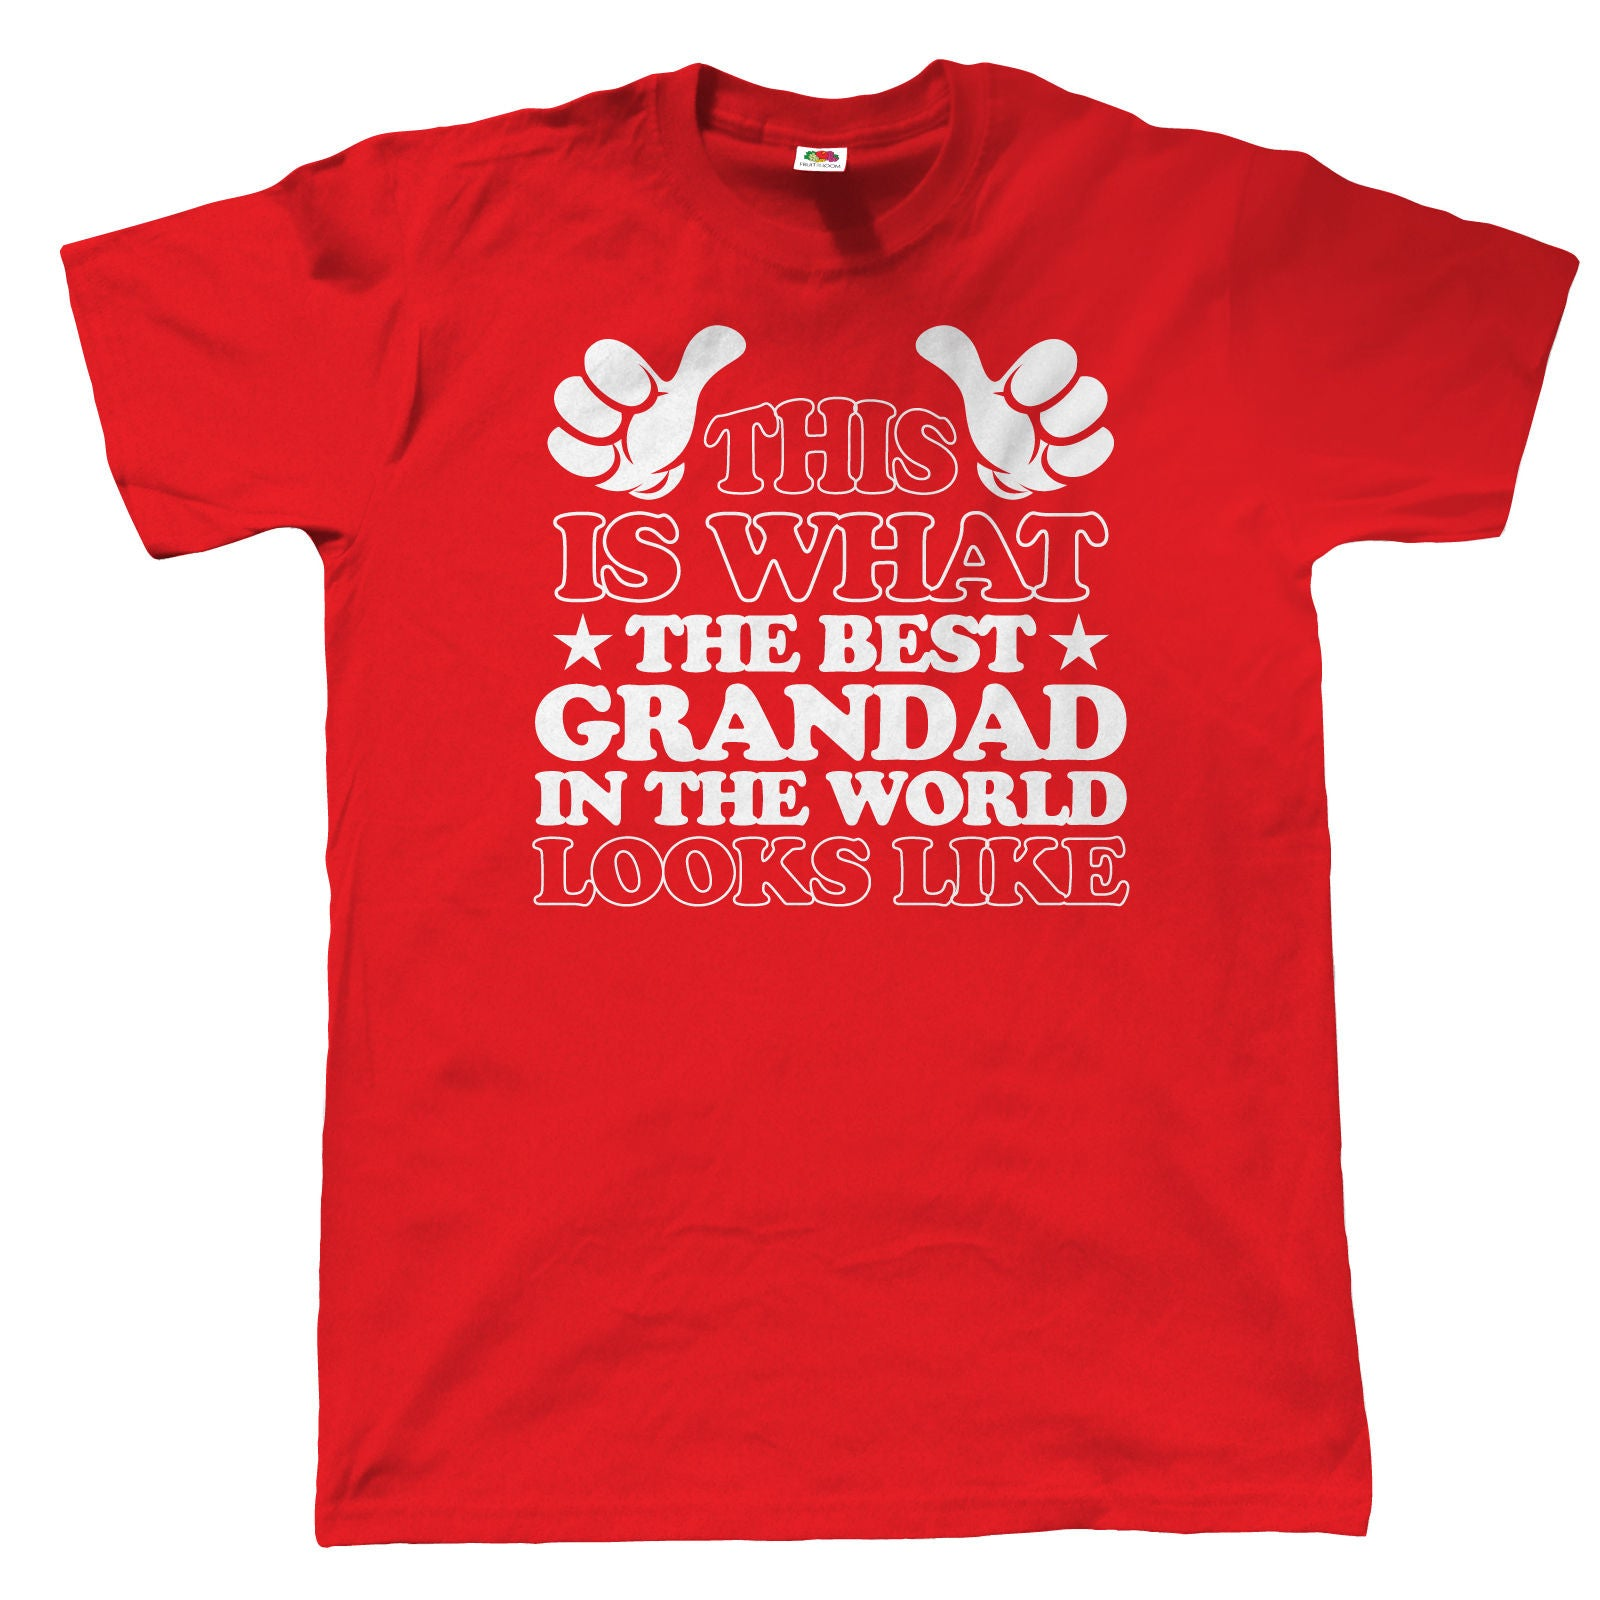 What The Best Grandad In The World Looks Like, Mens T Shirt